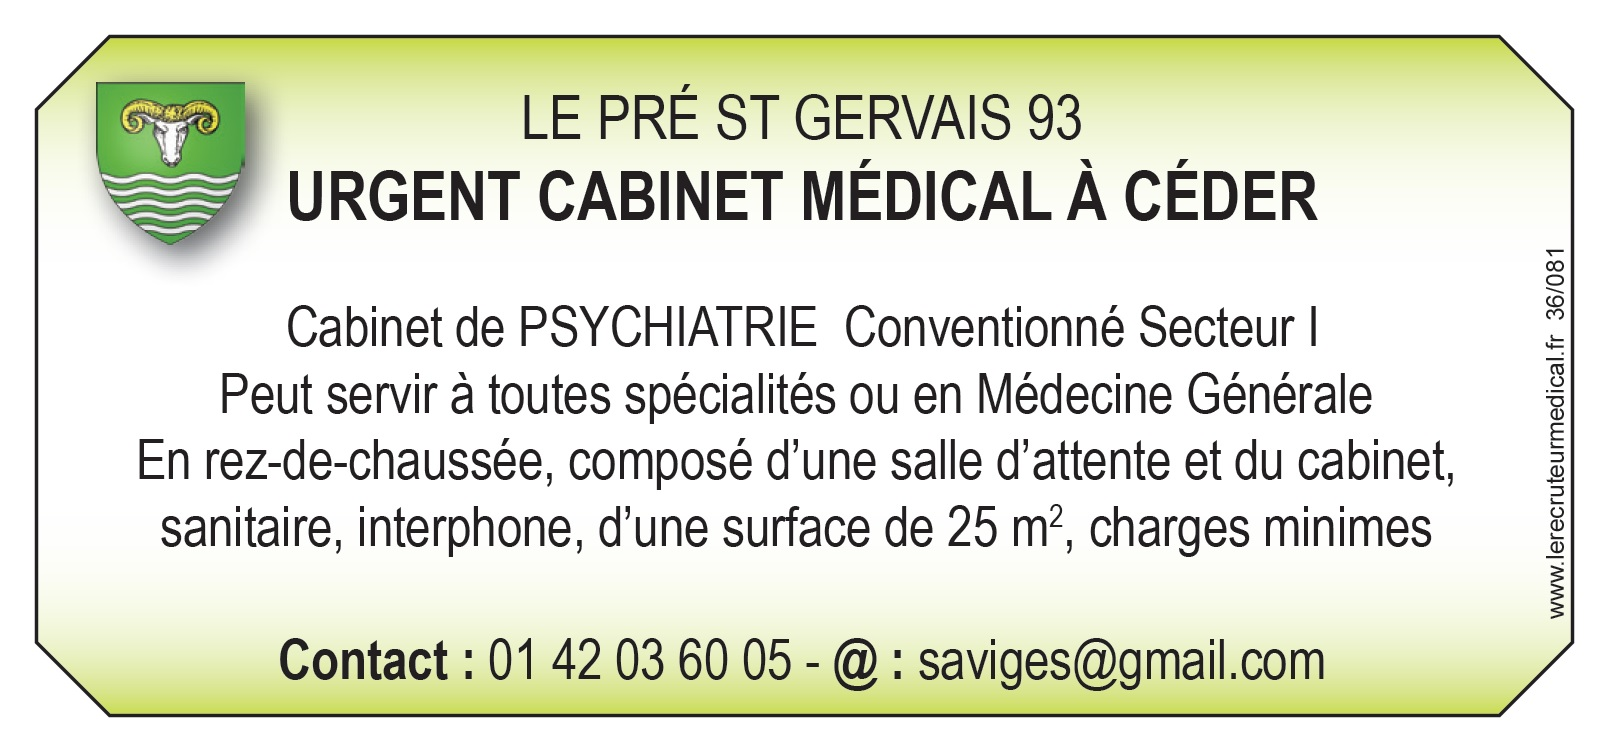 cession cabinet medical de psychiatrie toutes specialites le recruteur m dical. Black Bedroom Furniture Sets. Home Design Ideas